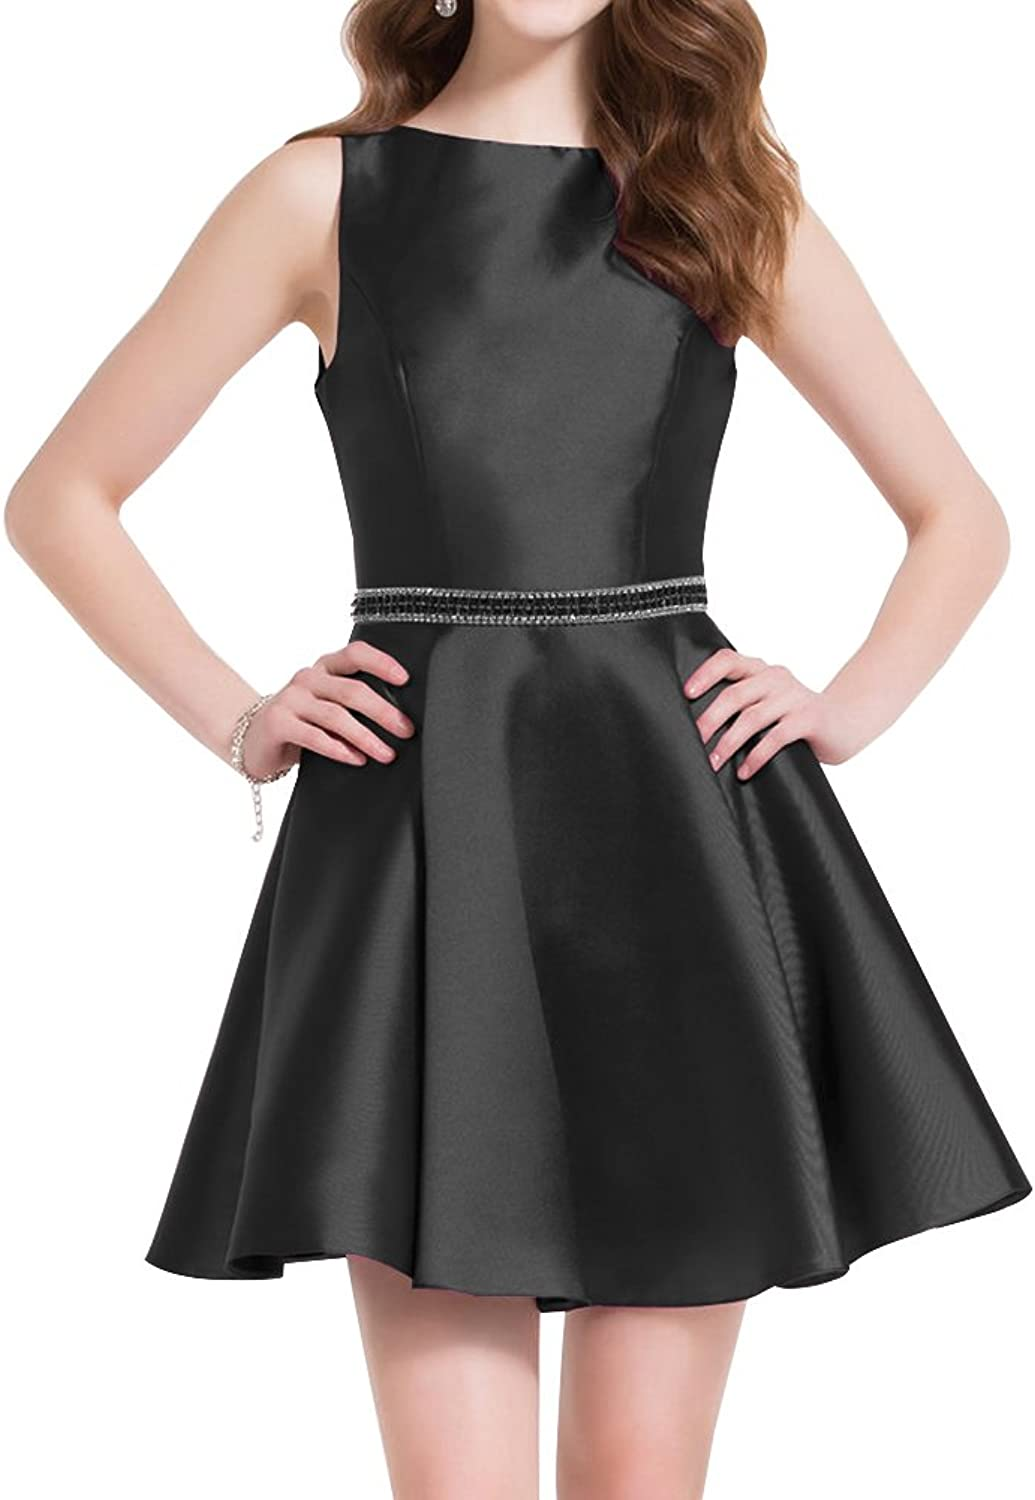 Beaded Homecoming Dress Short High Neck Backless ALine 2018 Cocktail Gown Satin